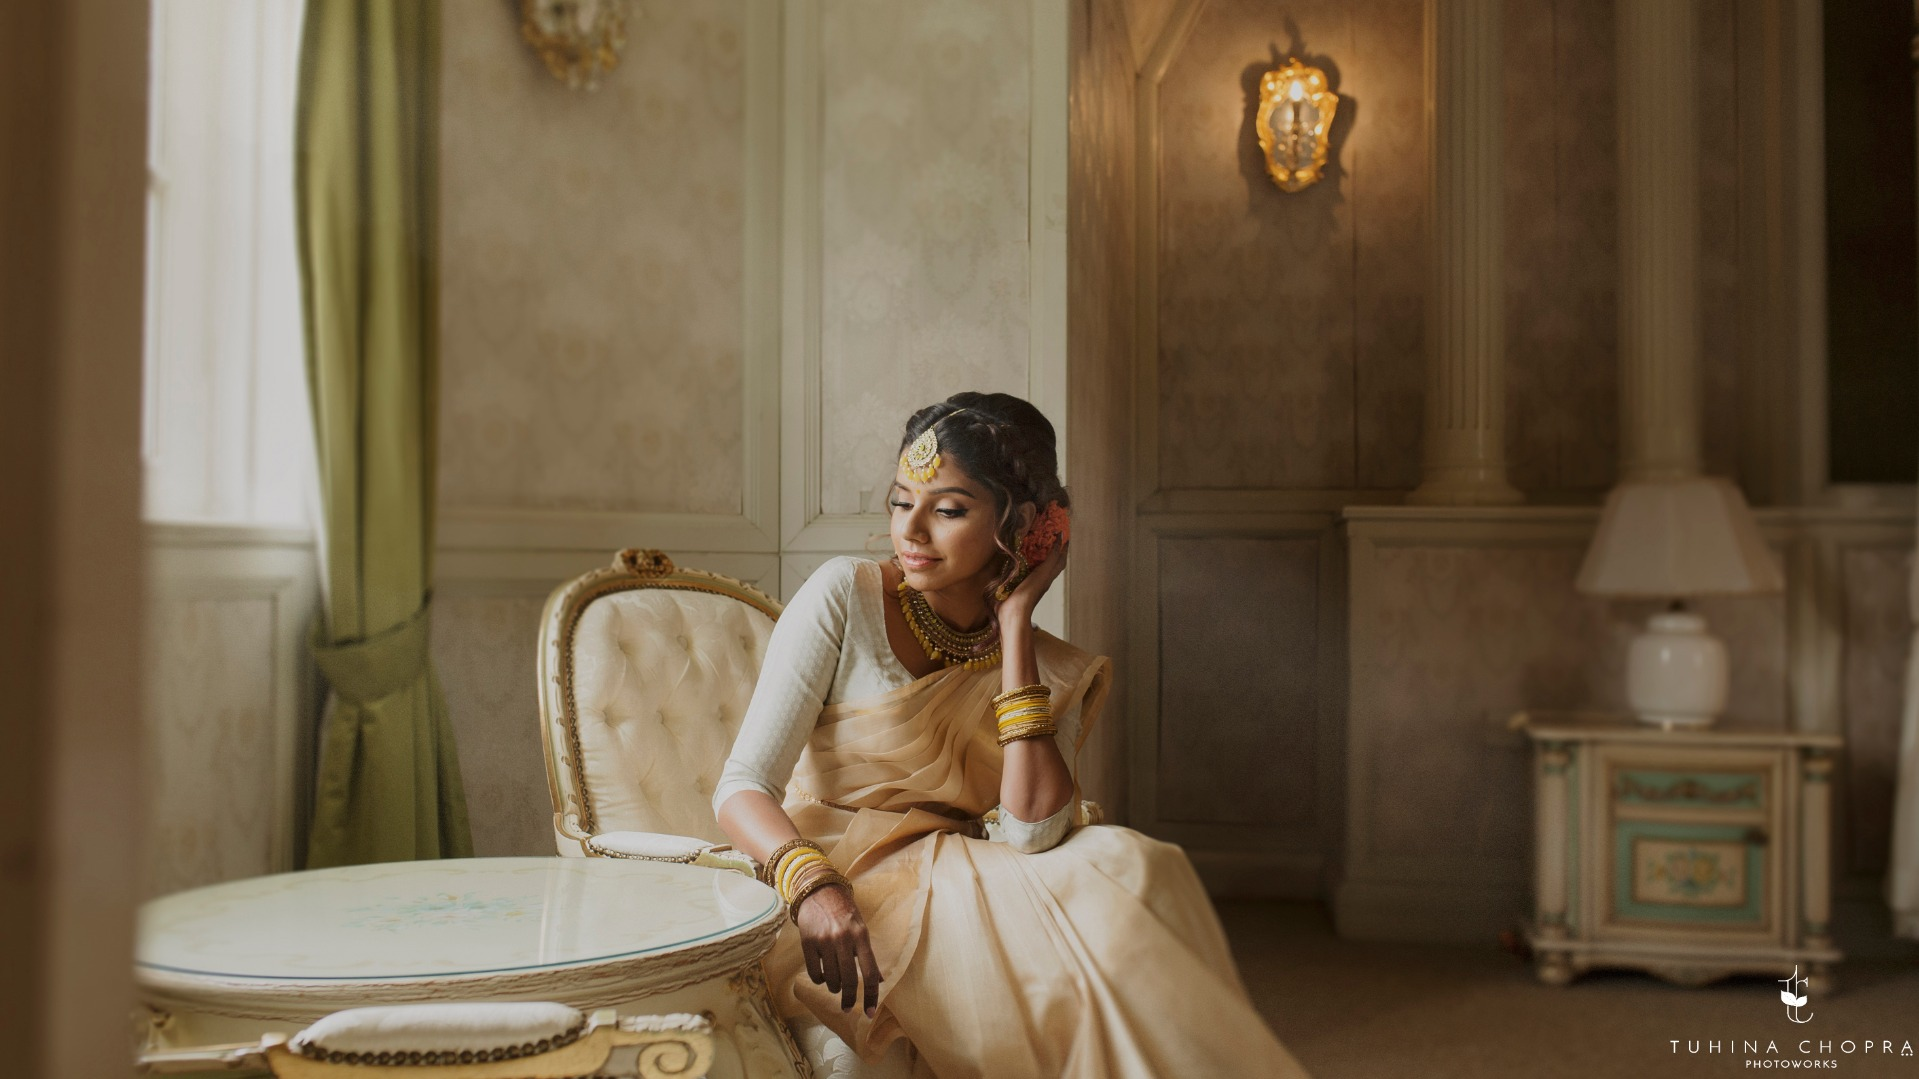 Pre-wedding photoshoot of traditional Indian bride